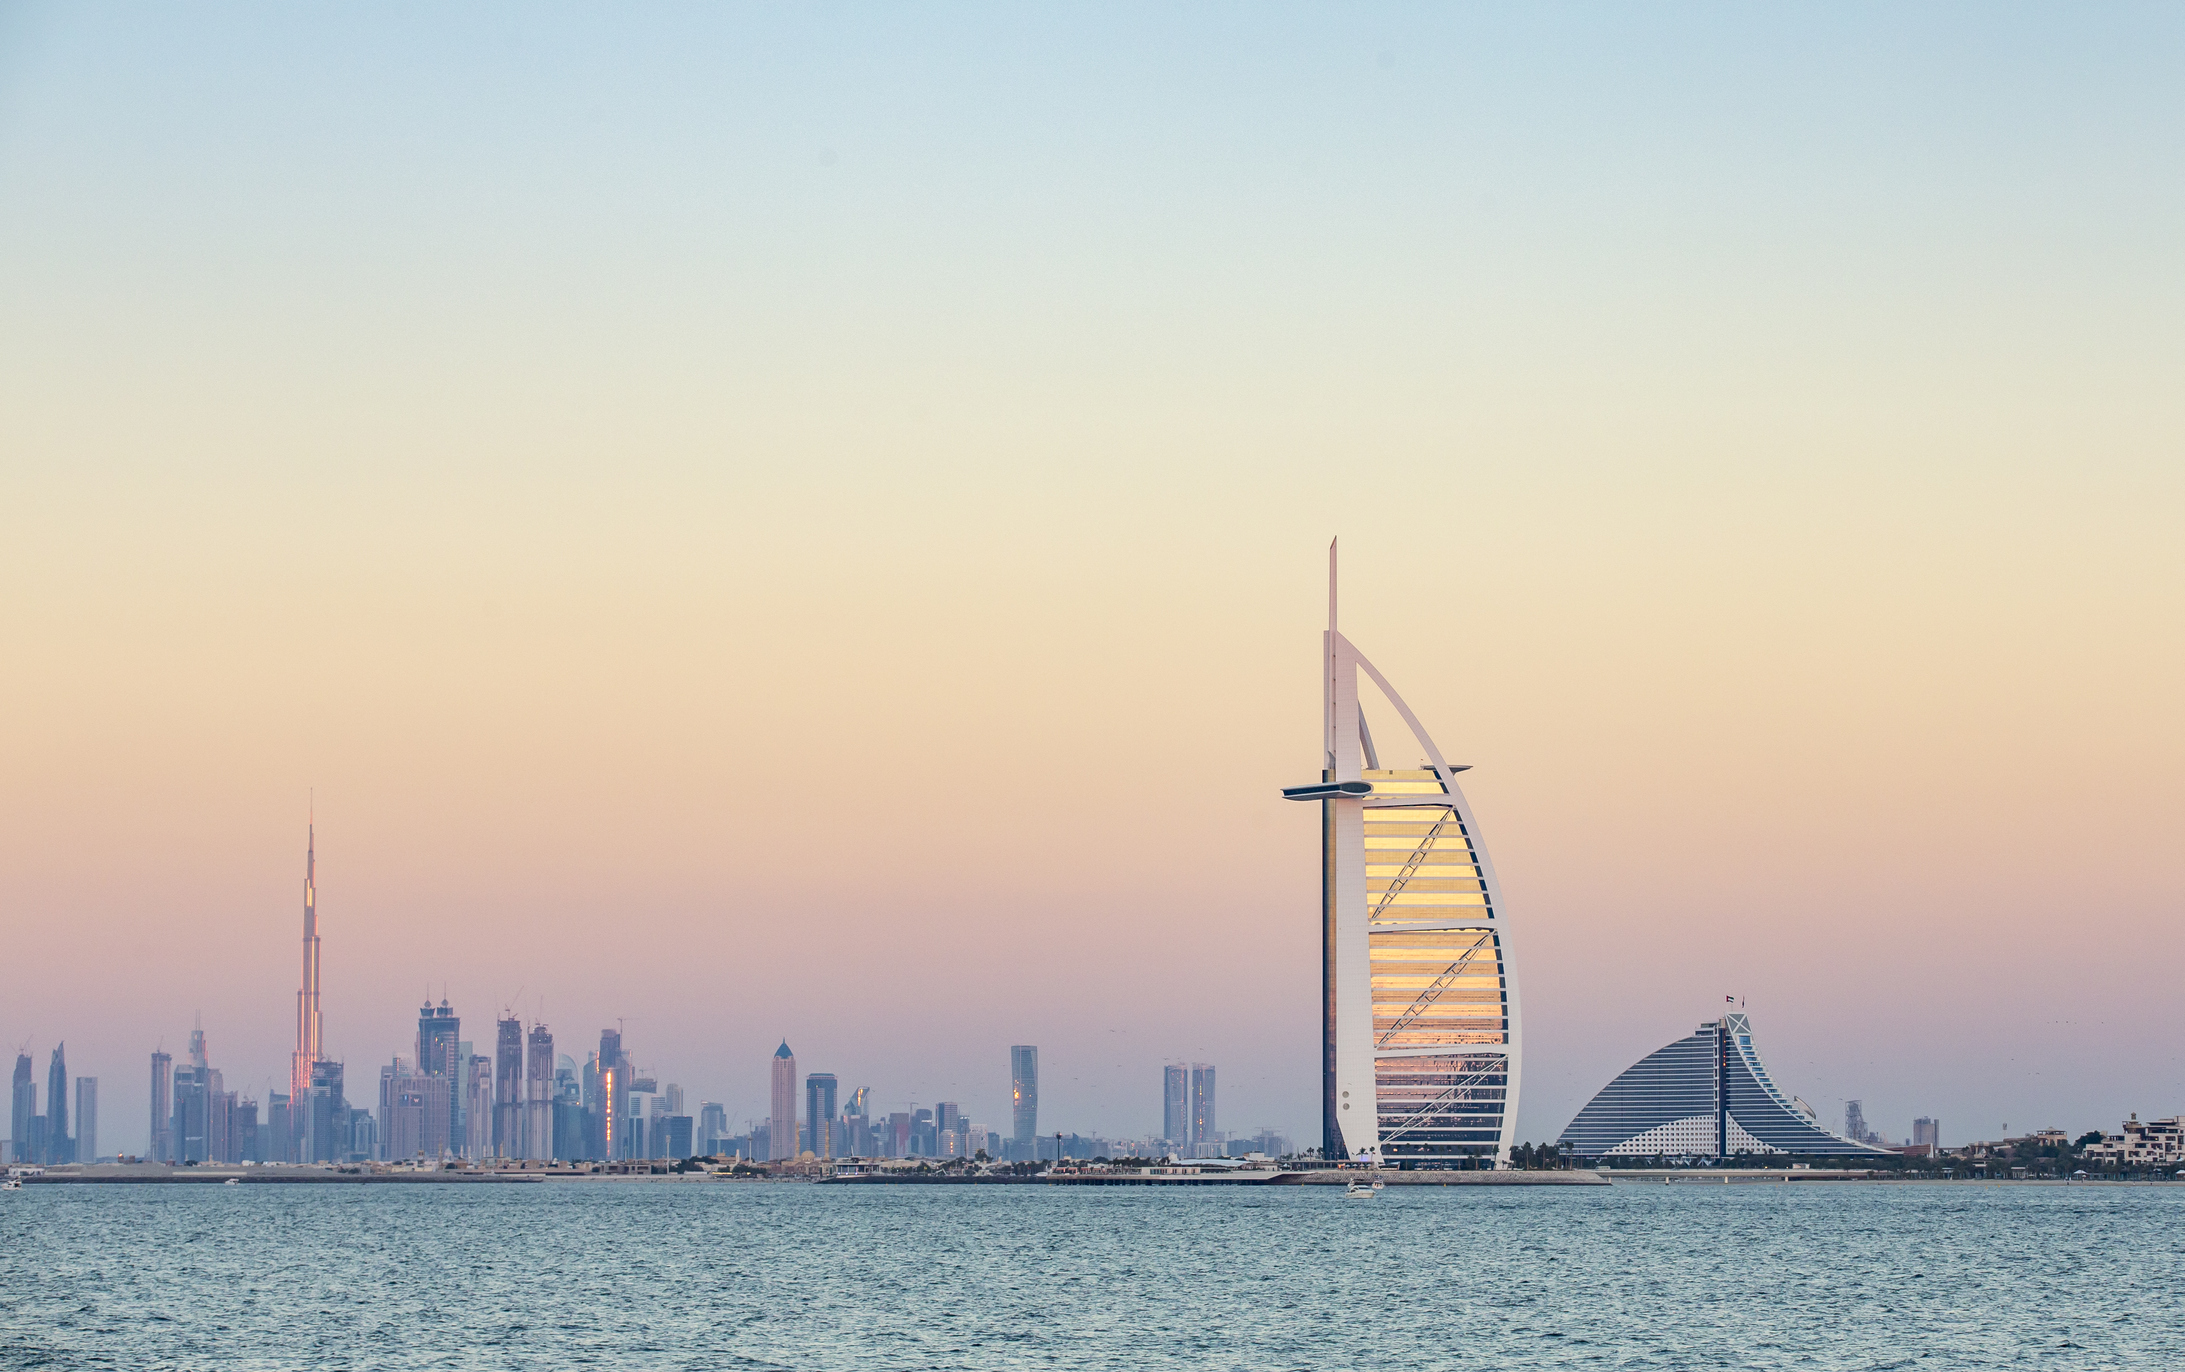 Dubai, United Arab Emirates, January 12th, 2018: Burj Al Arab Hotel at sunrise